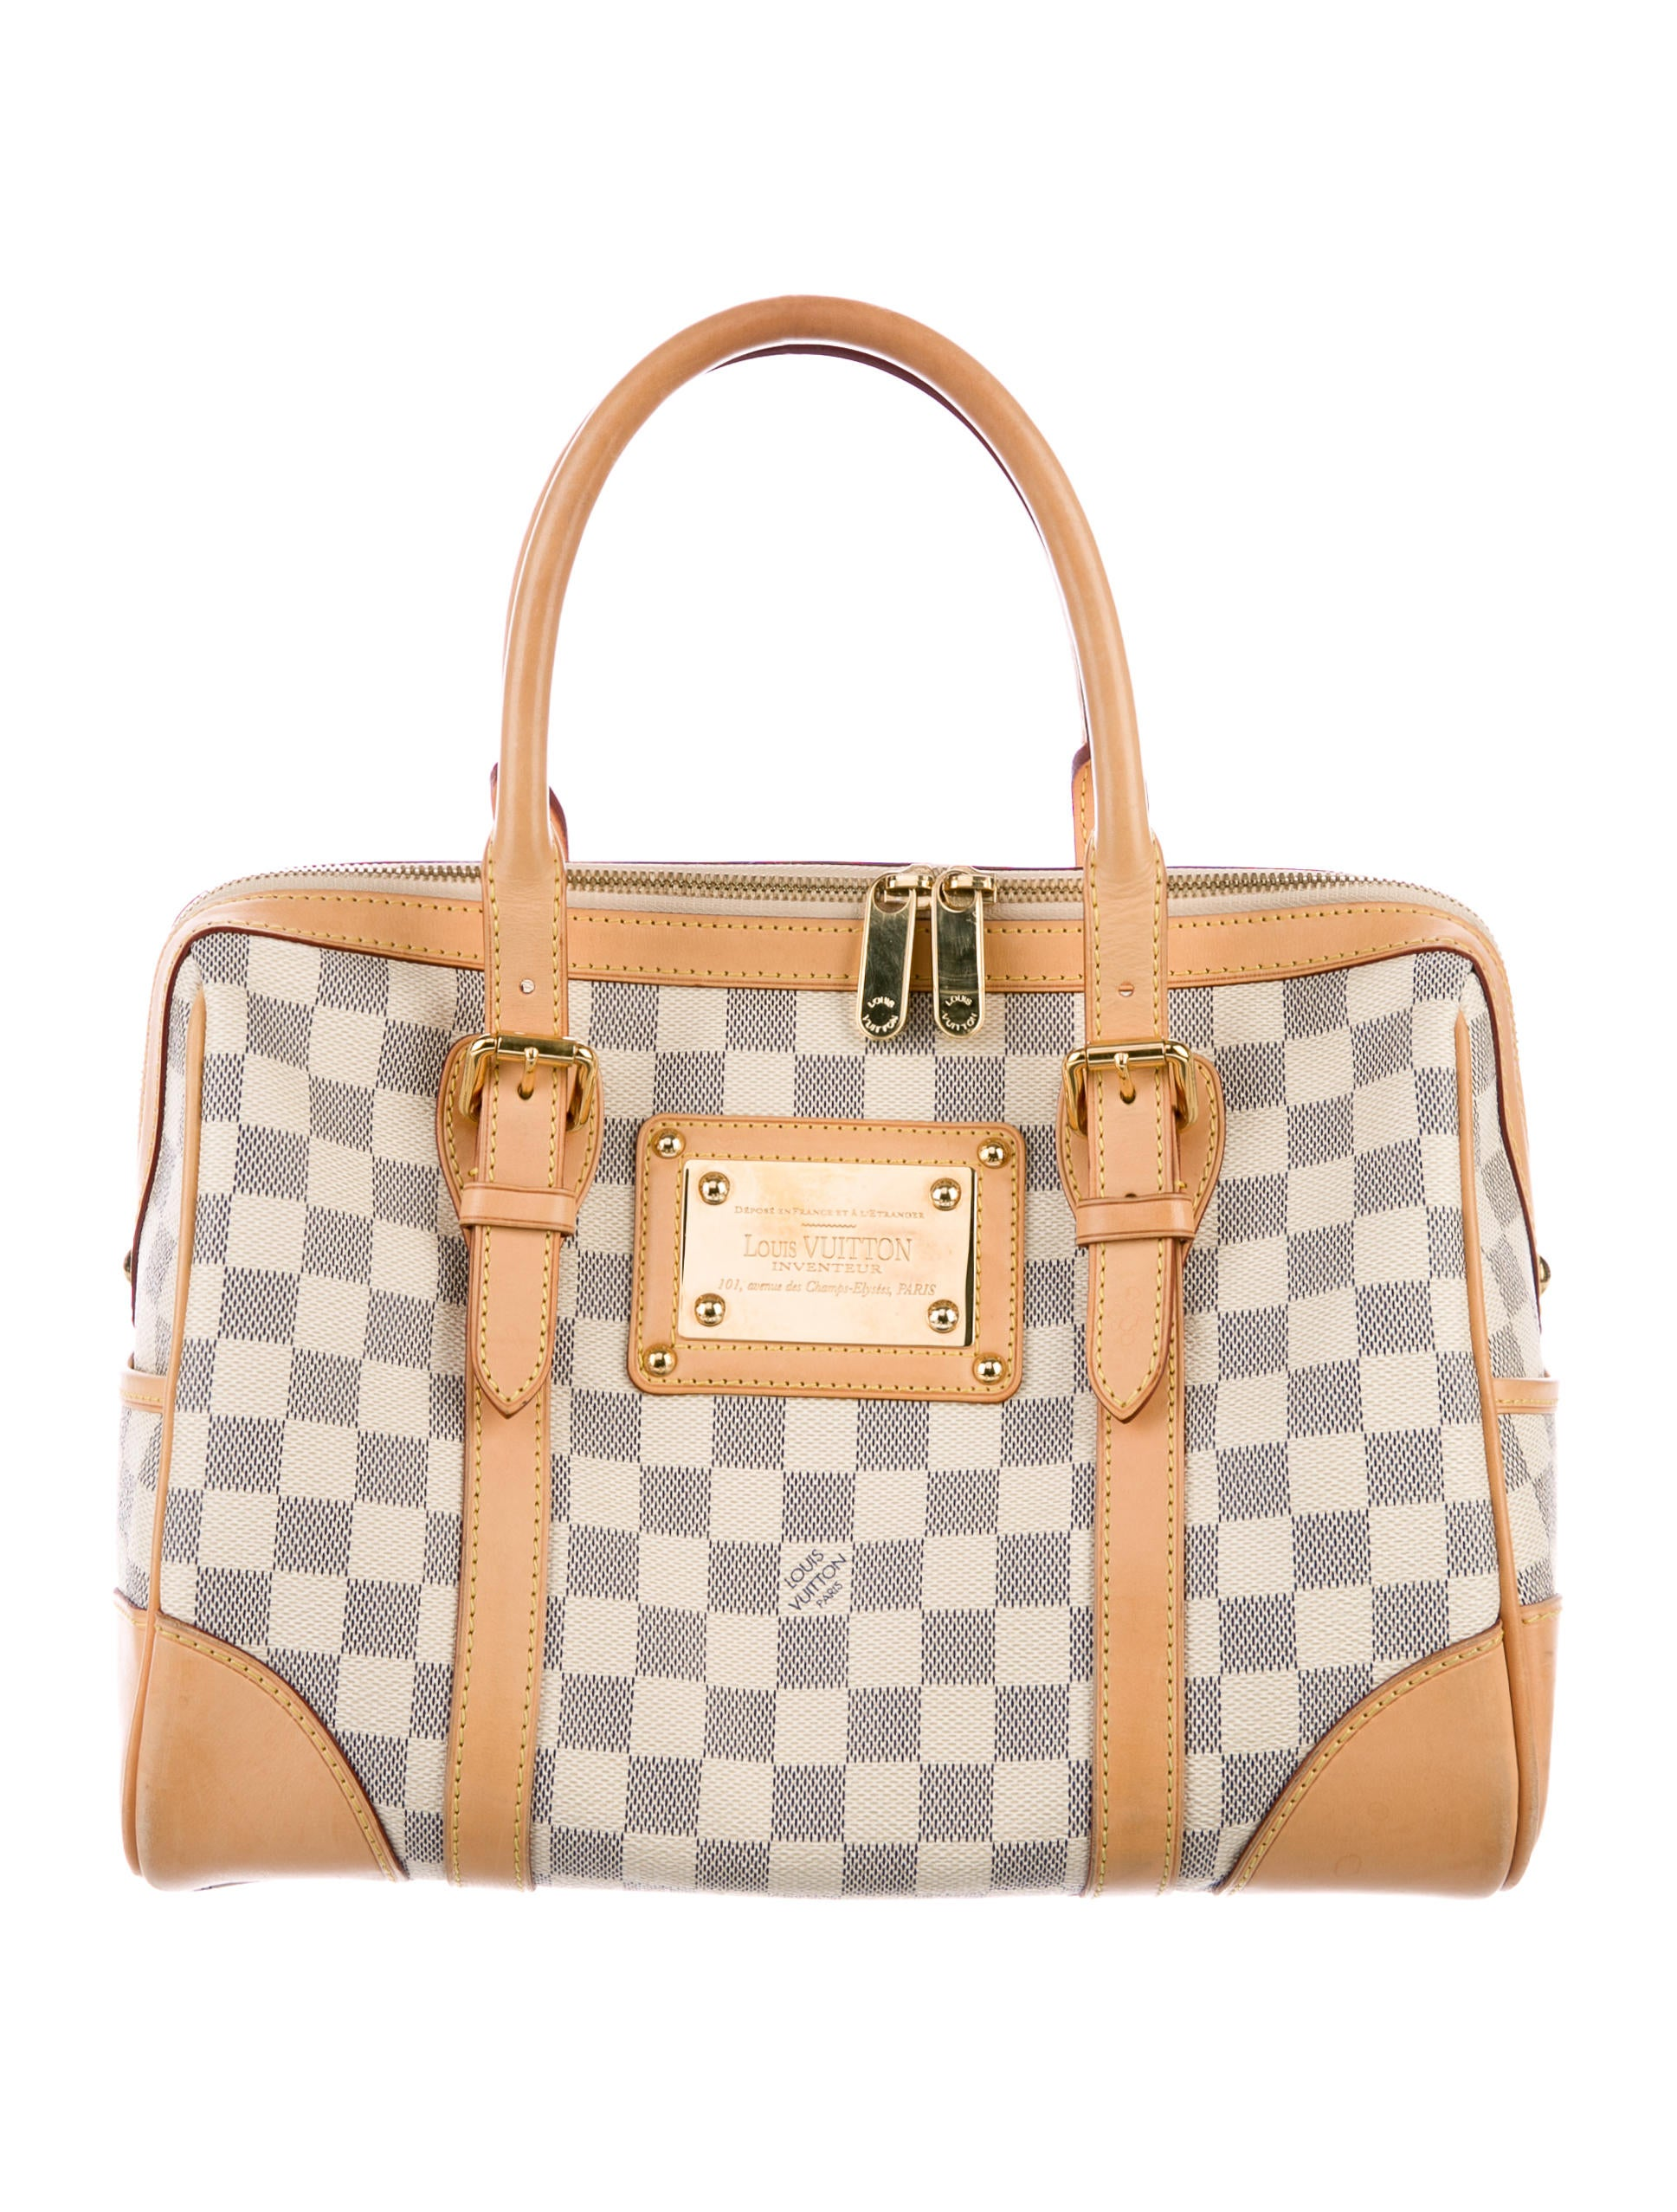 Louis Vuitton Damier Azur Berkeley Bag Handbags